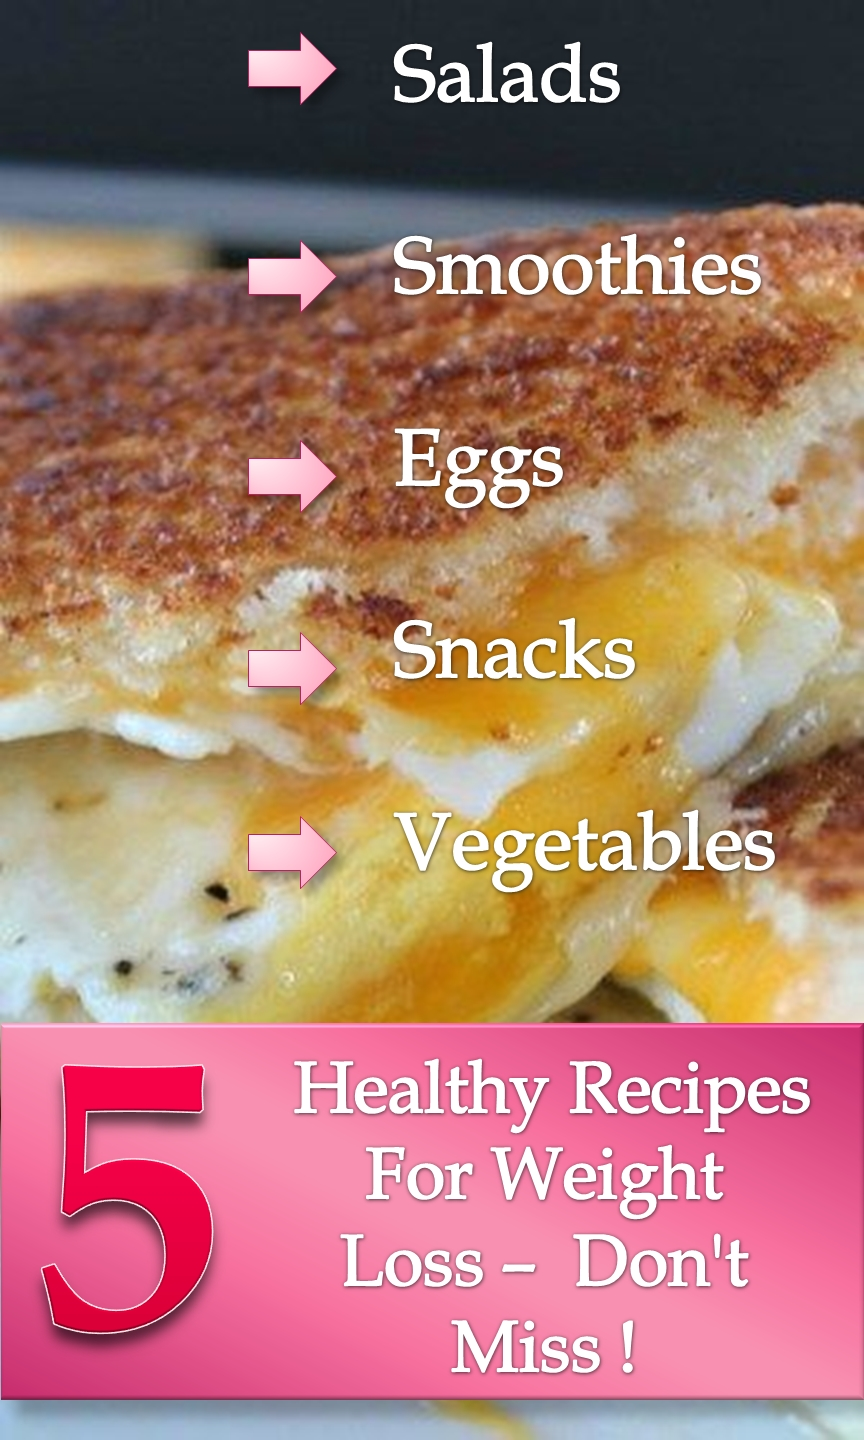 Food that could make you lose weight picture 1